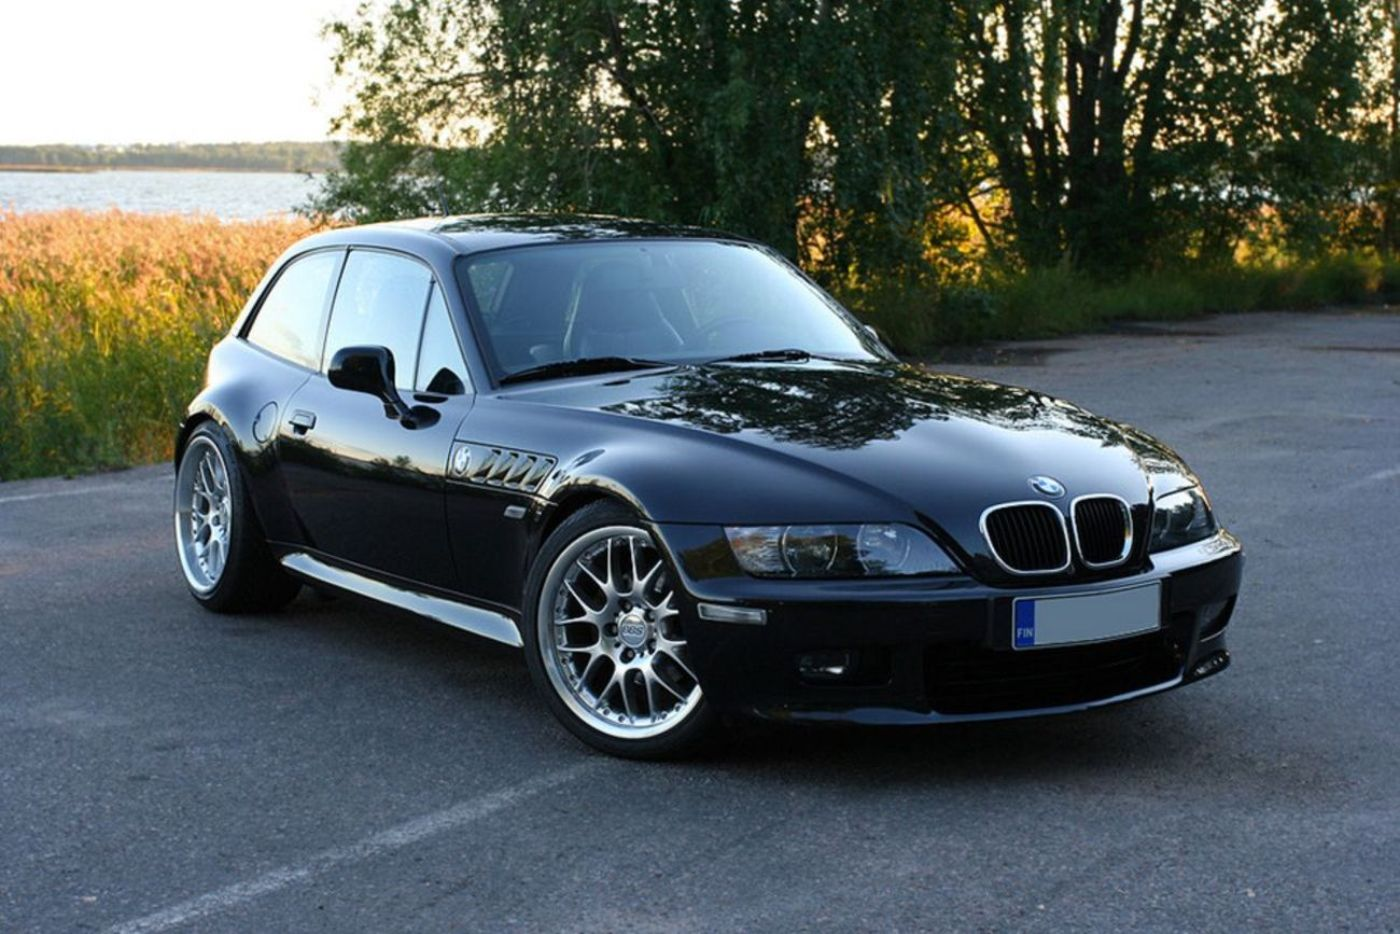 bmw z3 image. Black Bedroom Furniture Sets. Home Design Ideas